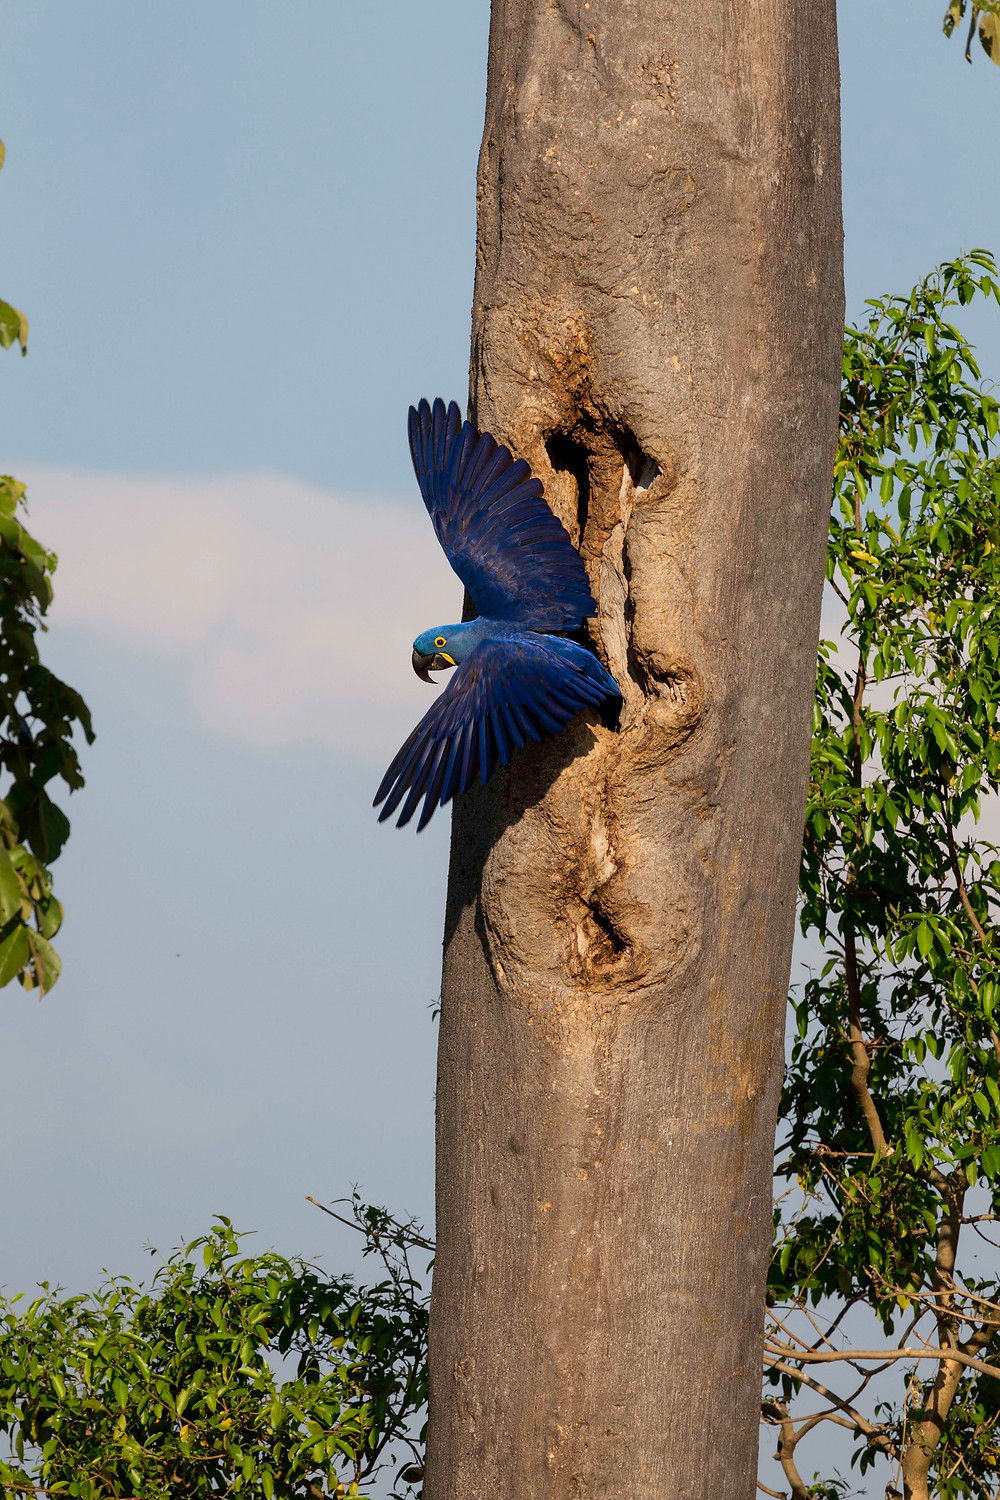 A Hyacinth Macaw exits a natural nesting hole...a rarity for this highly threatened species.